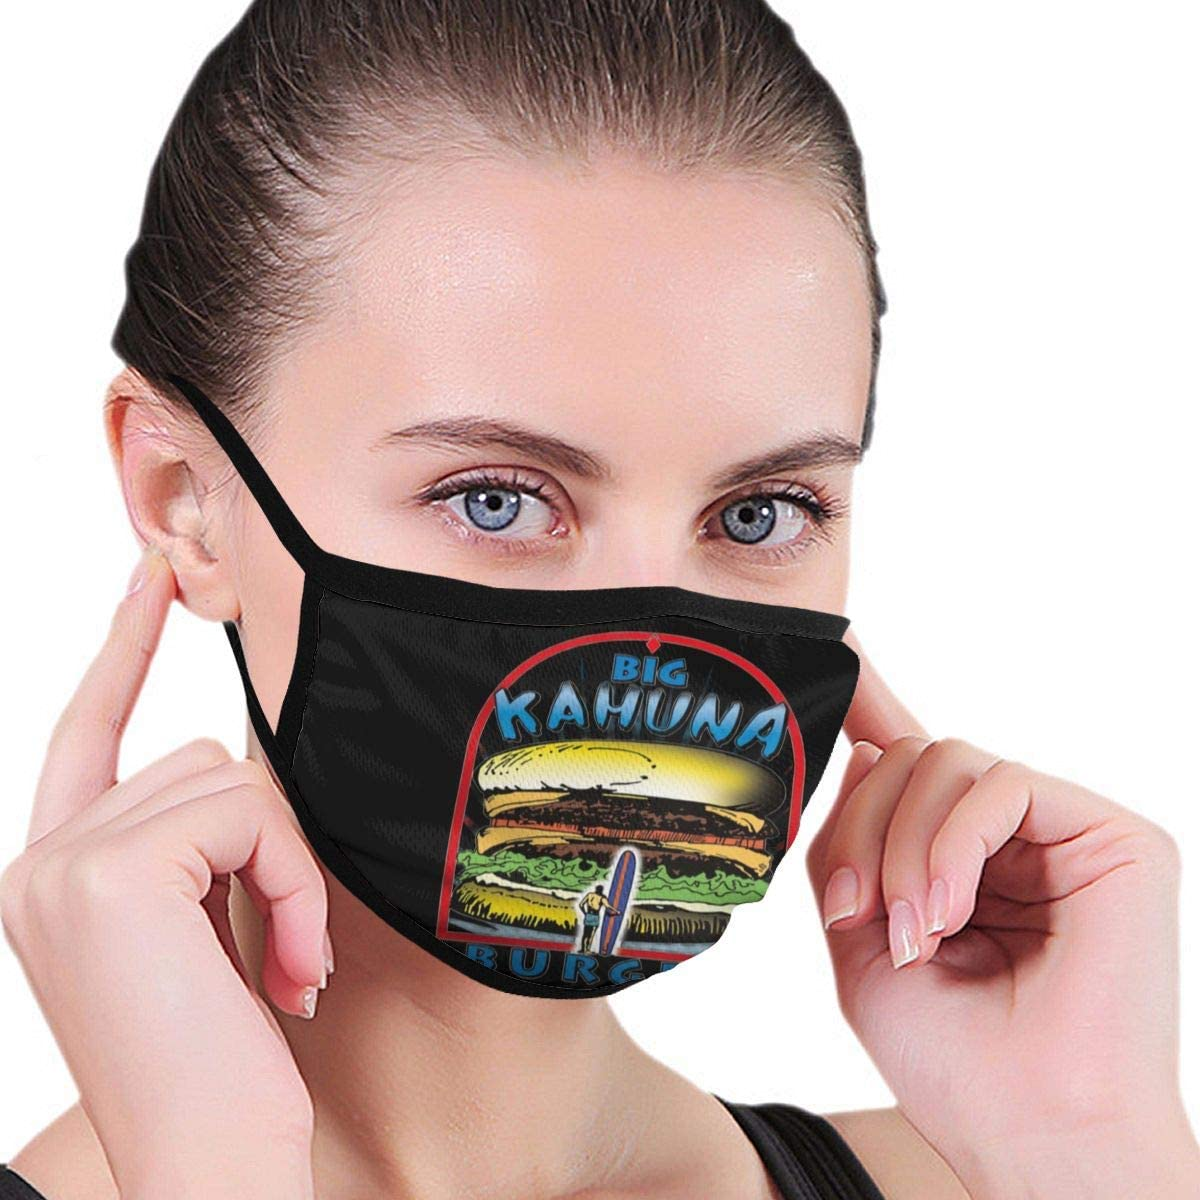 Wehoiweh Big Kahuna Burger Dust Prevention Face Cover Mouth Cover Bandana Cool Lightweight